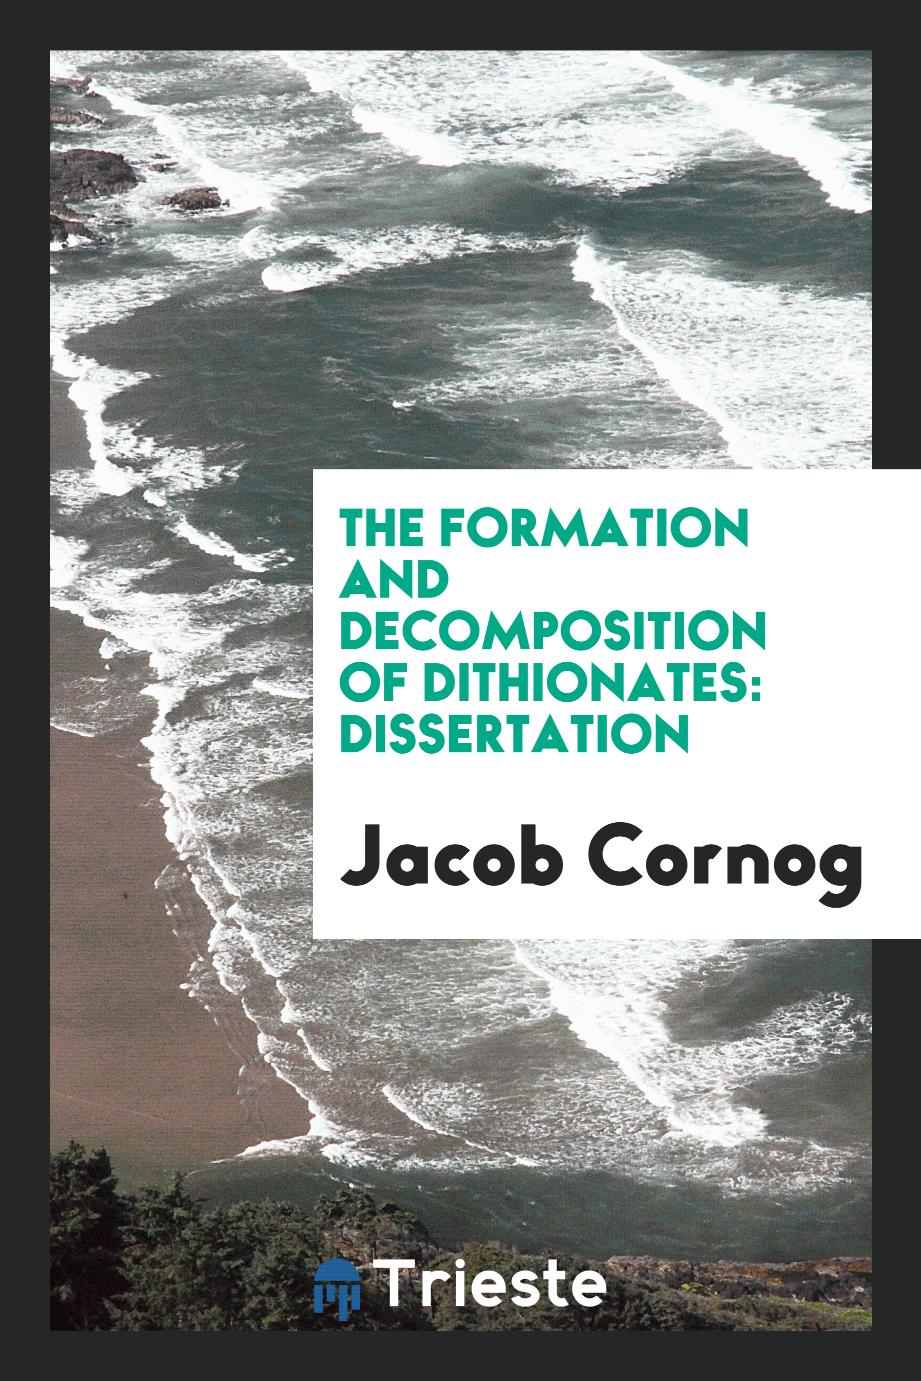 The Formation and Decomposition of Dithionates: dissertation